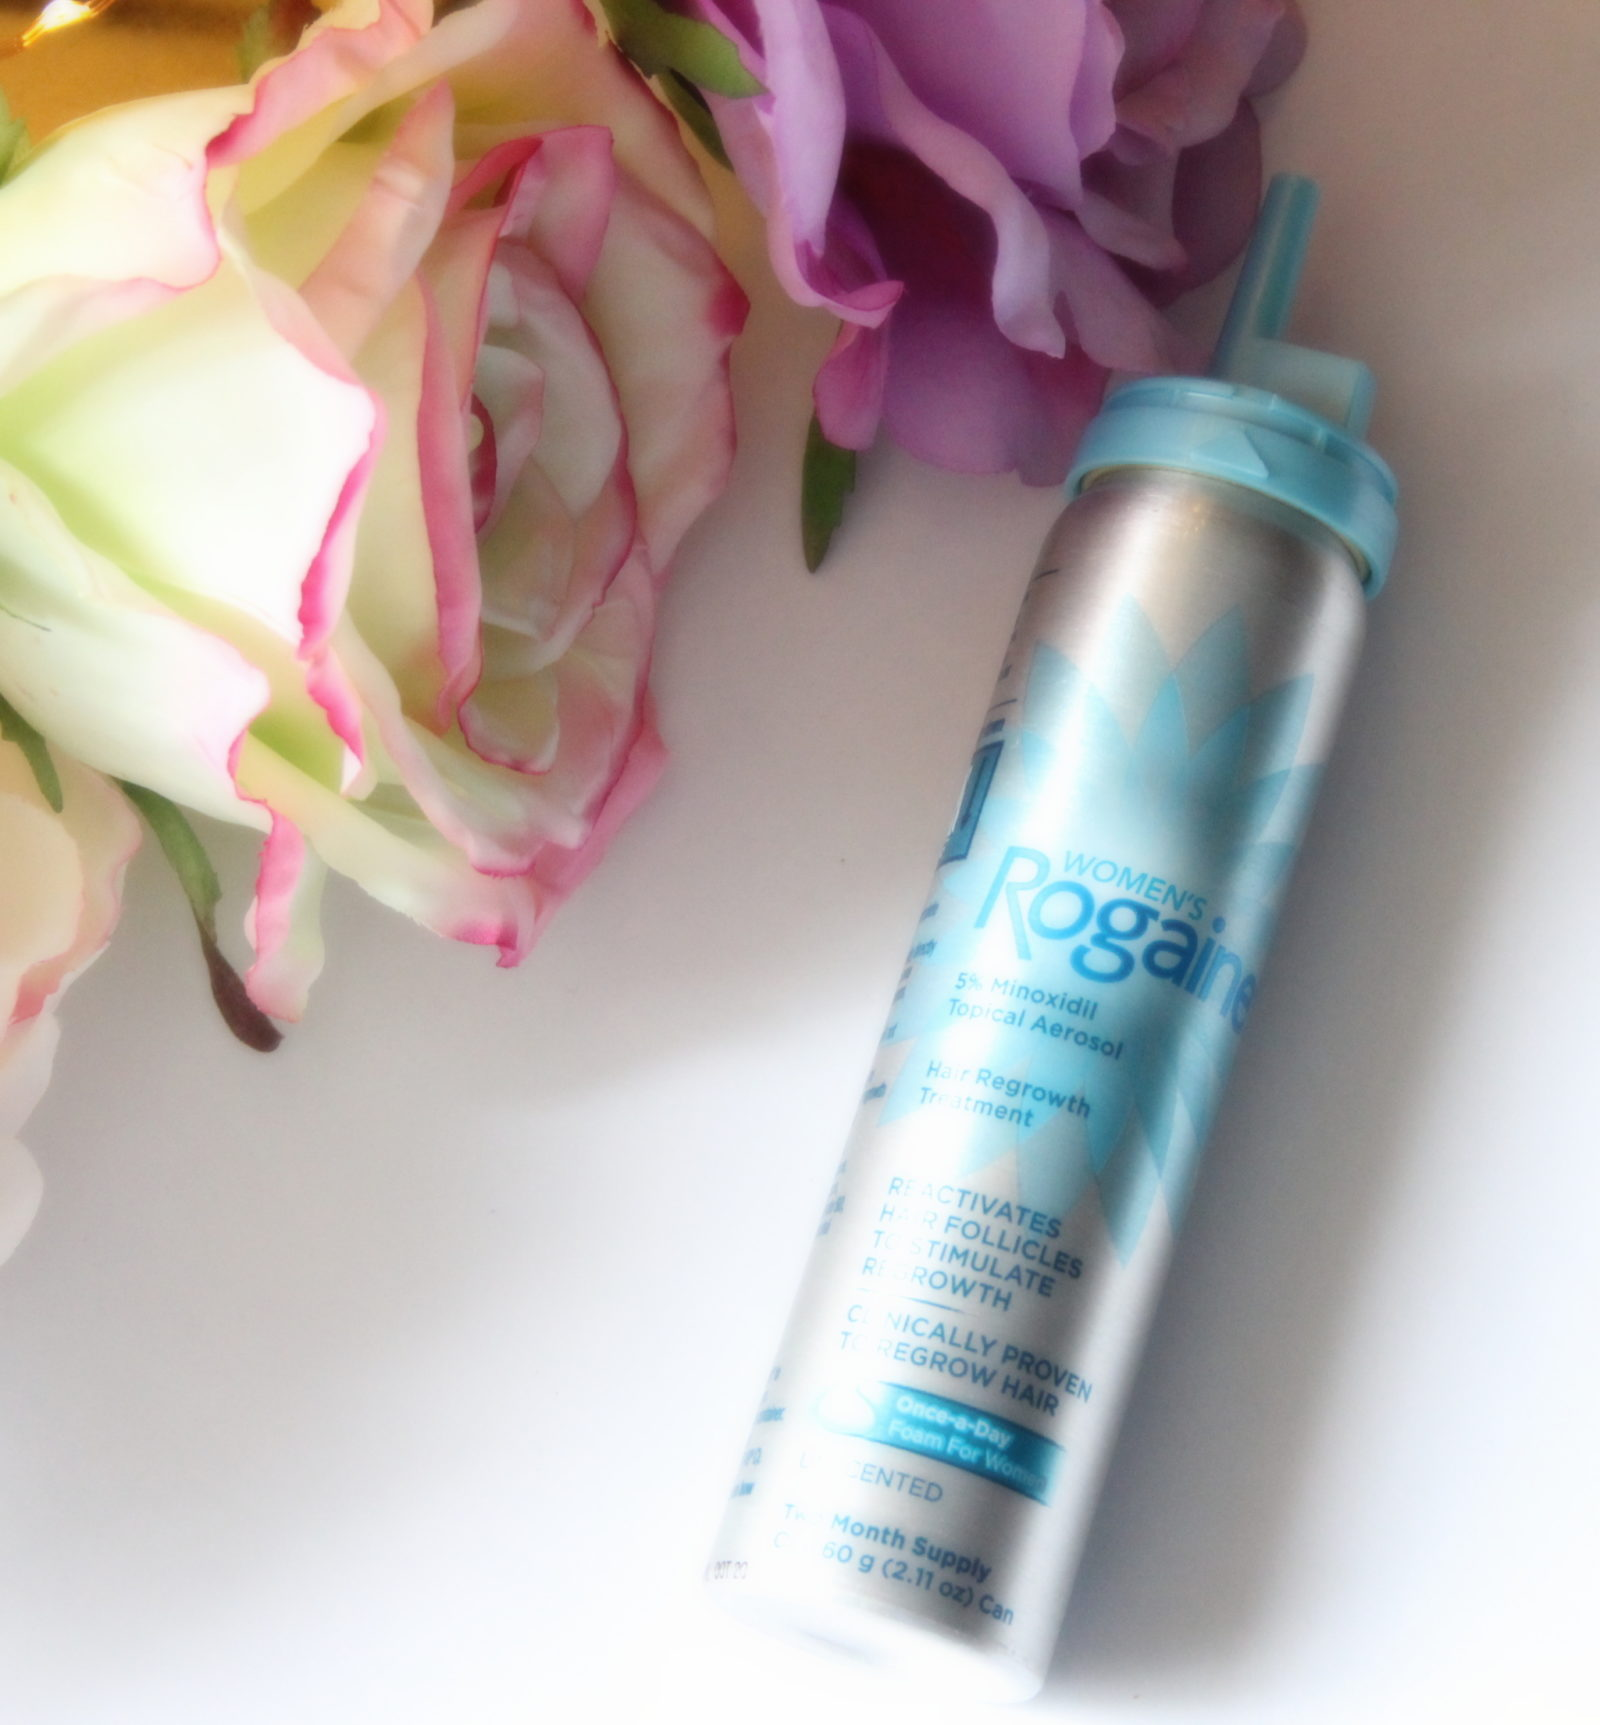 How to Use Women's Rogaine Foam for Thin Hair